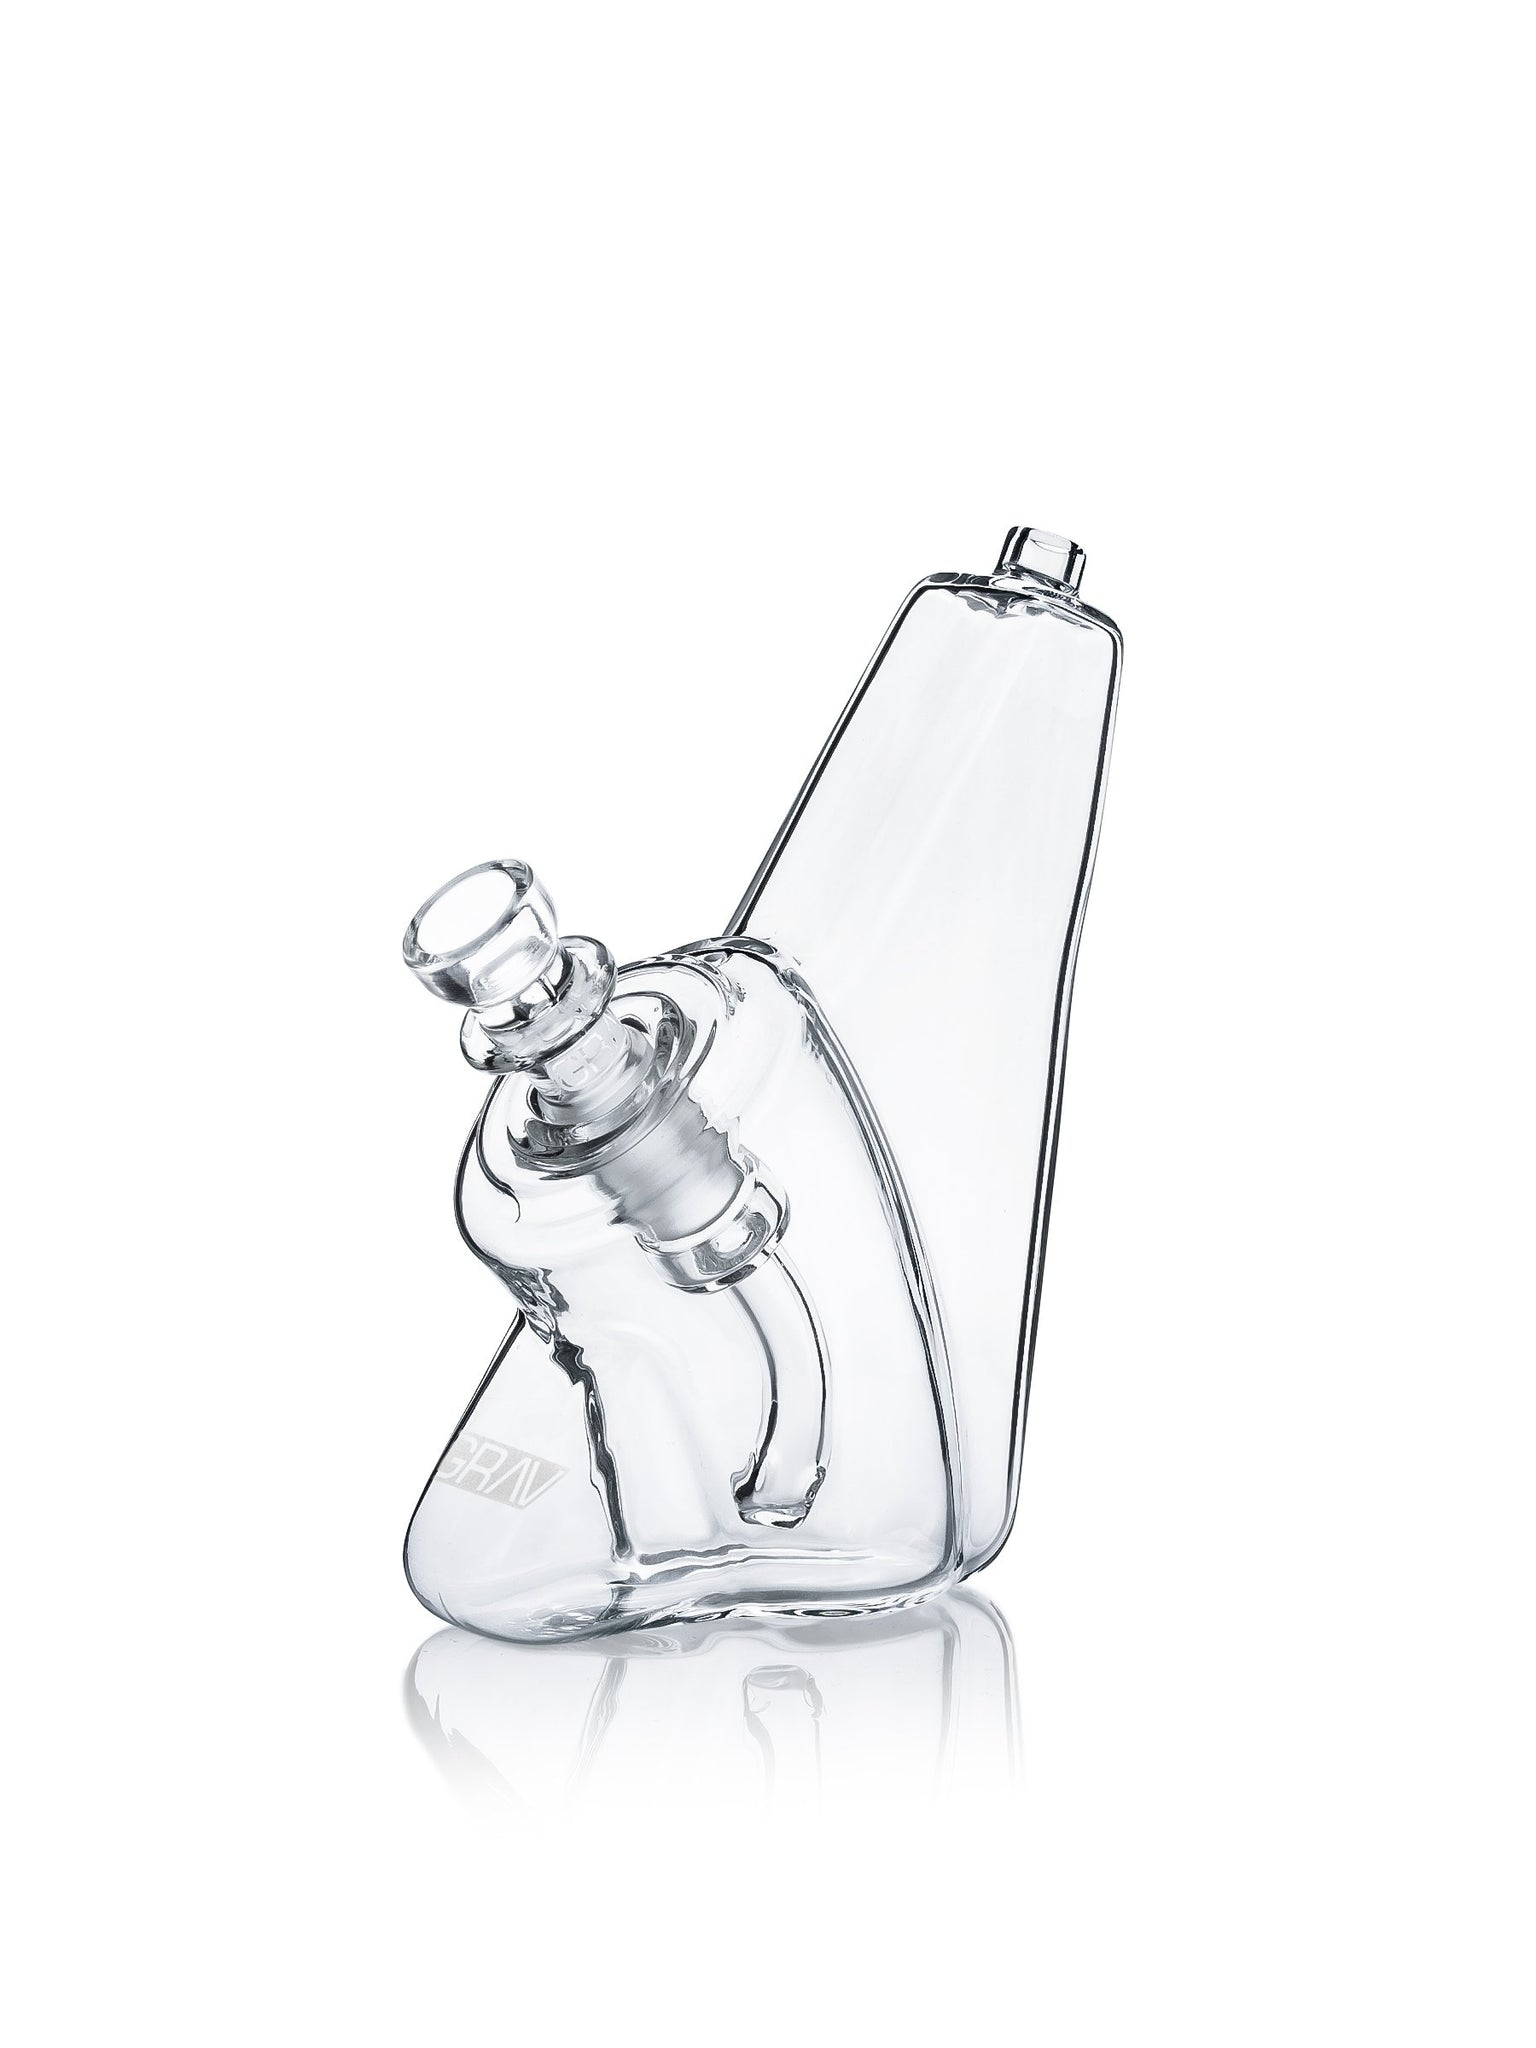 GRAV® Wedge Bubbler - Glasss Station